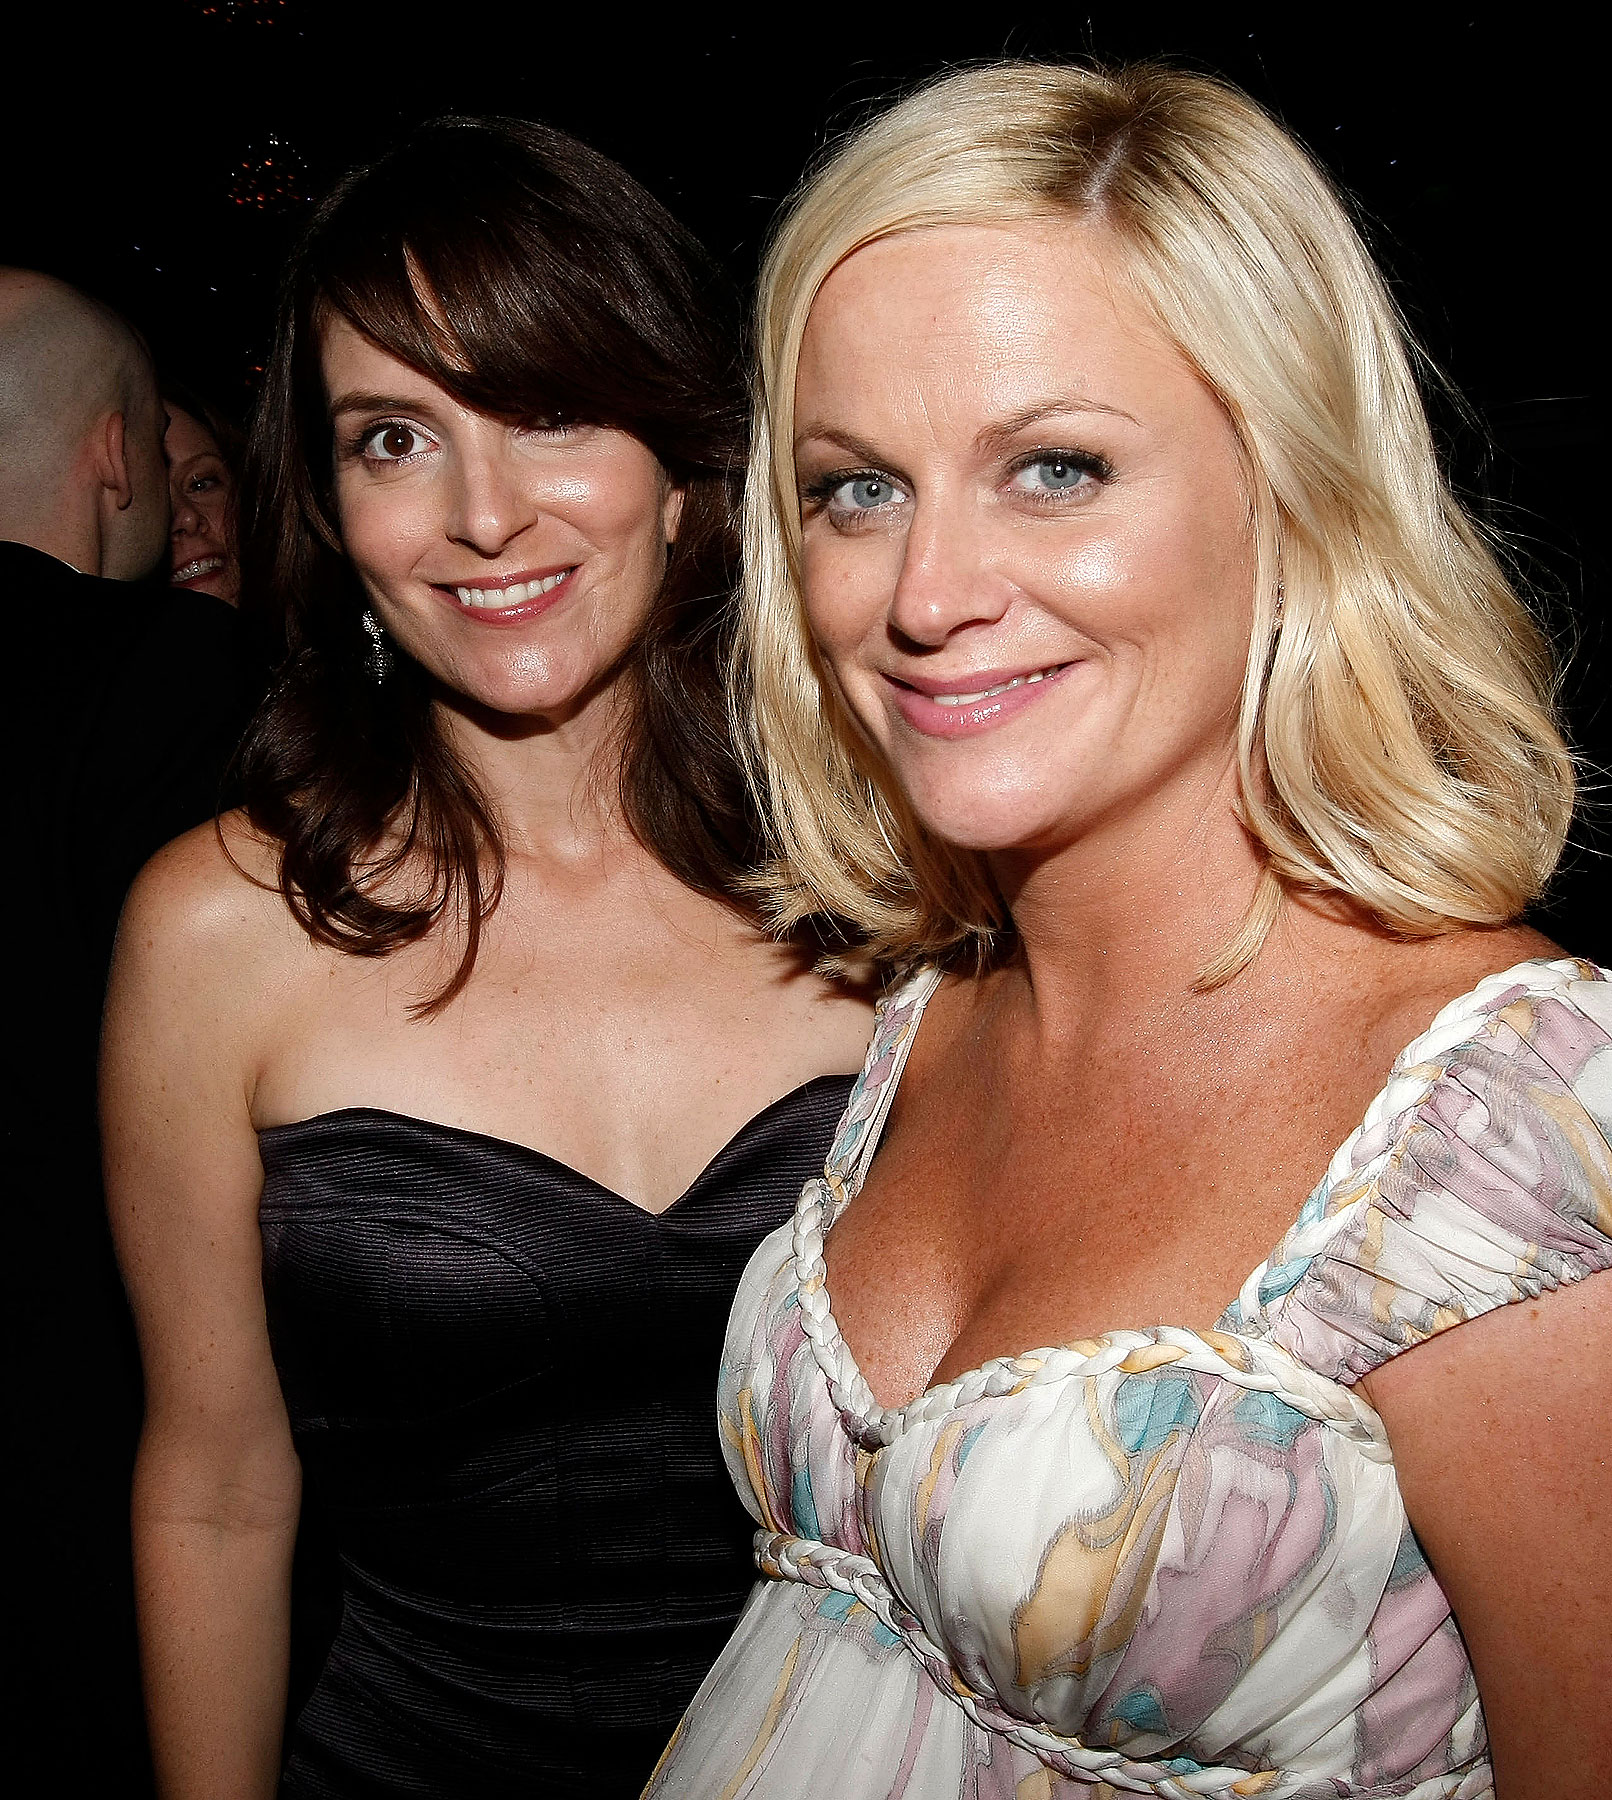 Tina Fey and Amy Poehler: Pranks for the Memories